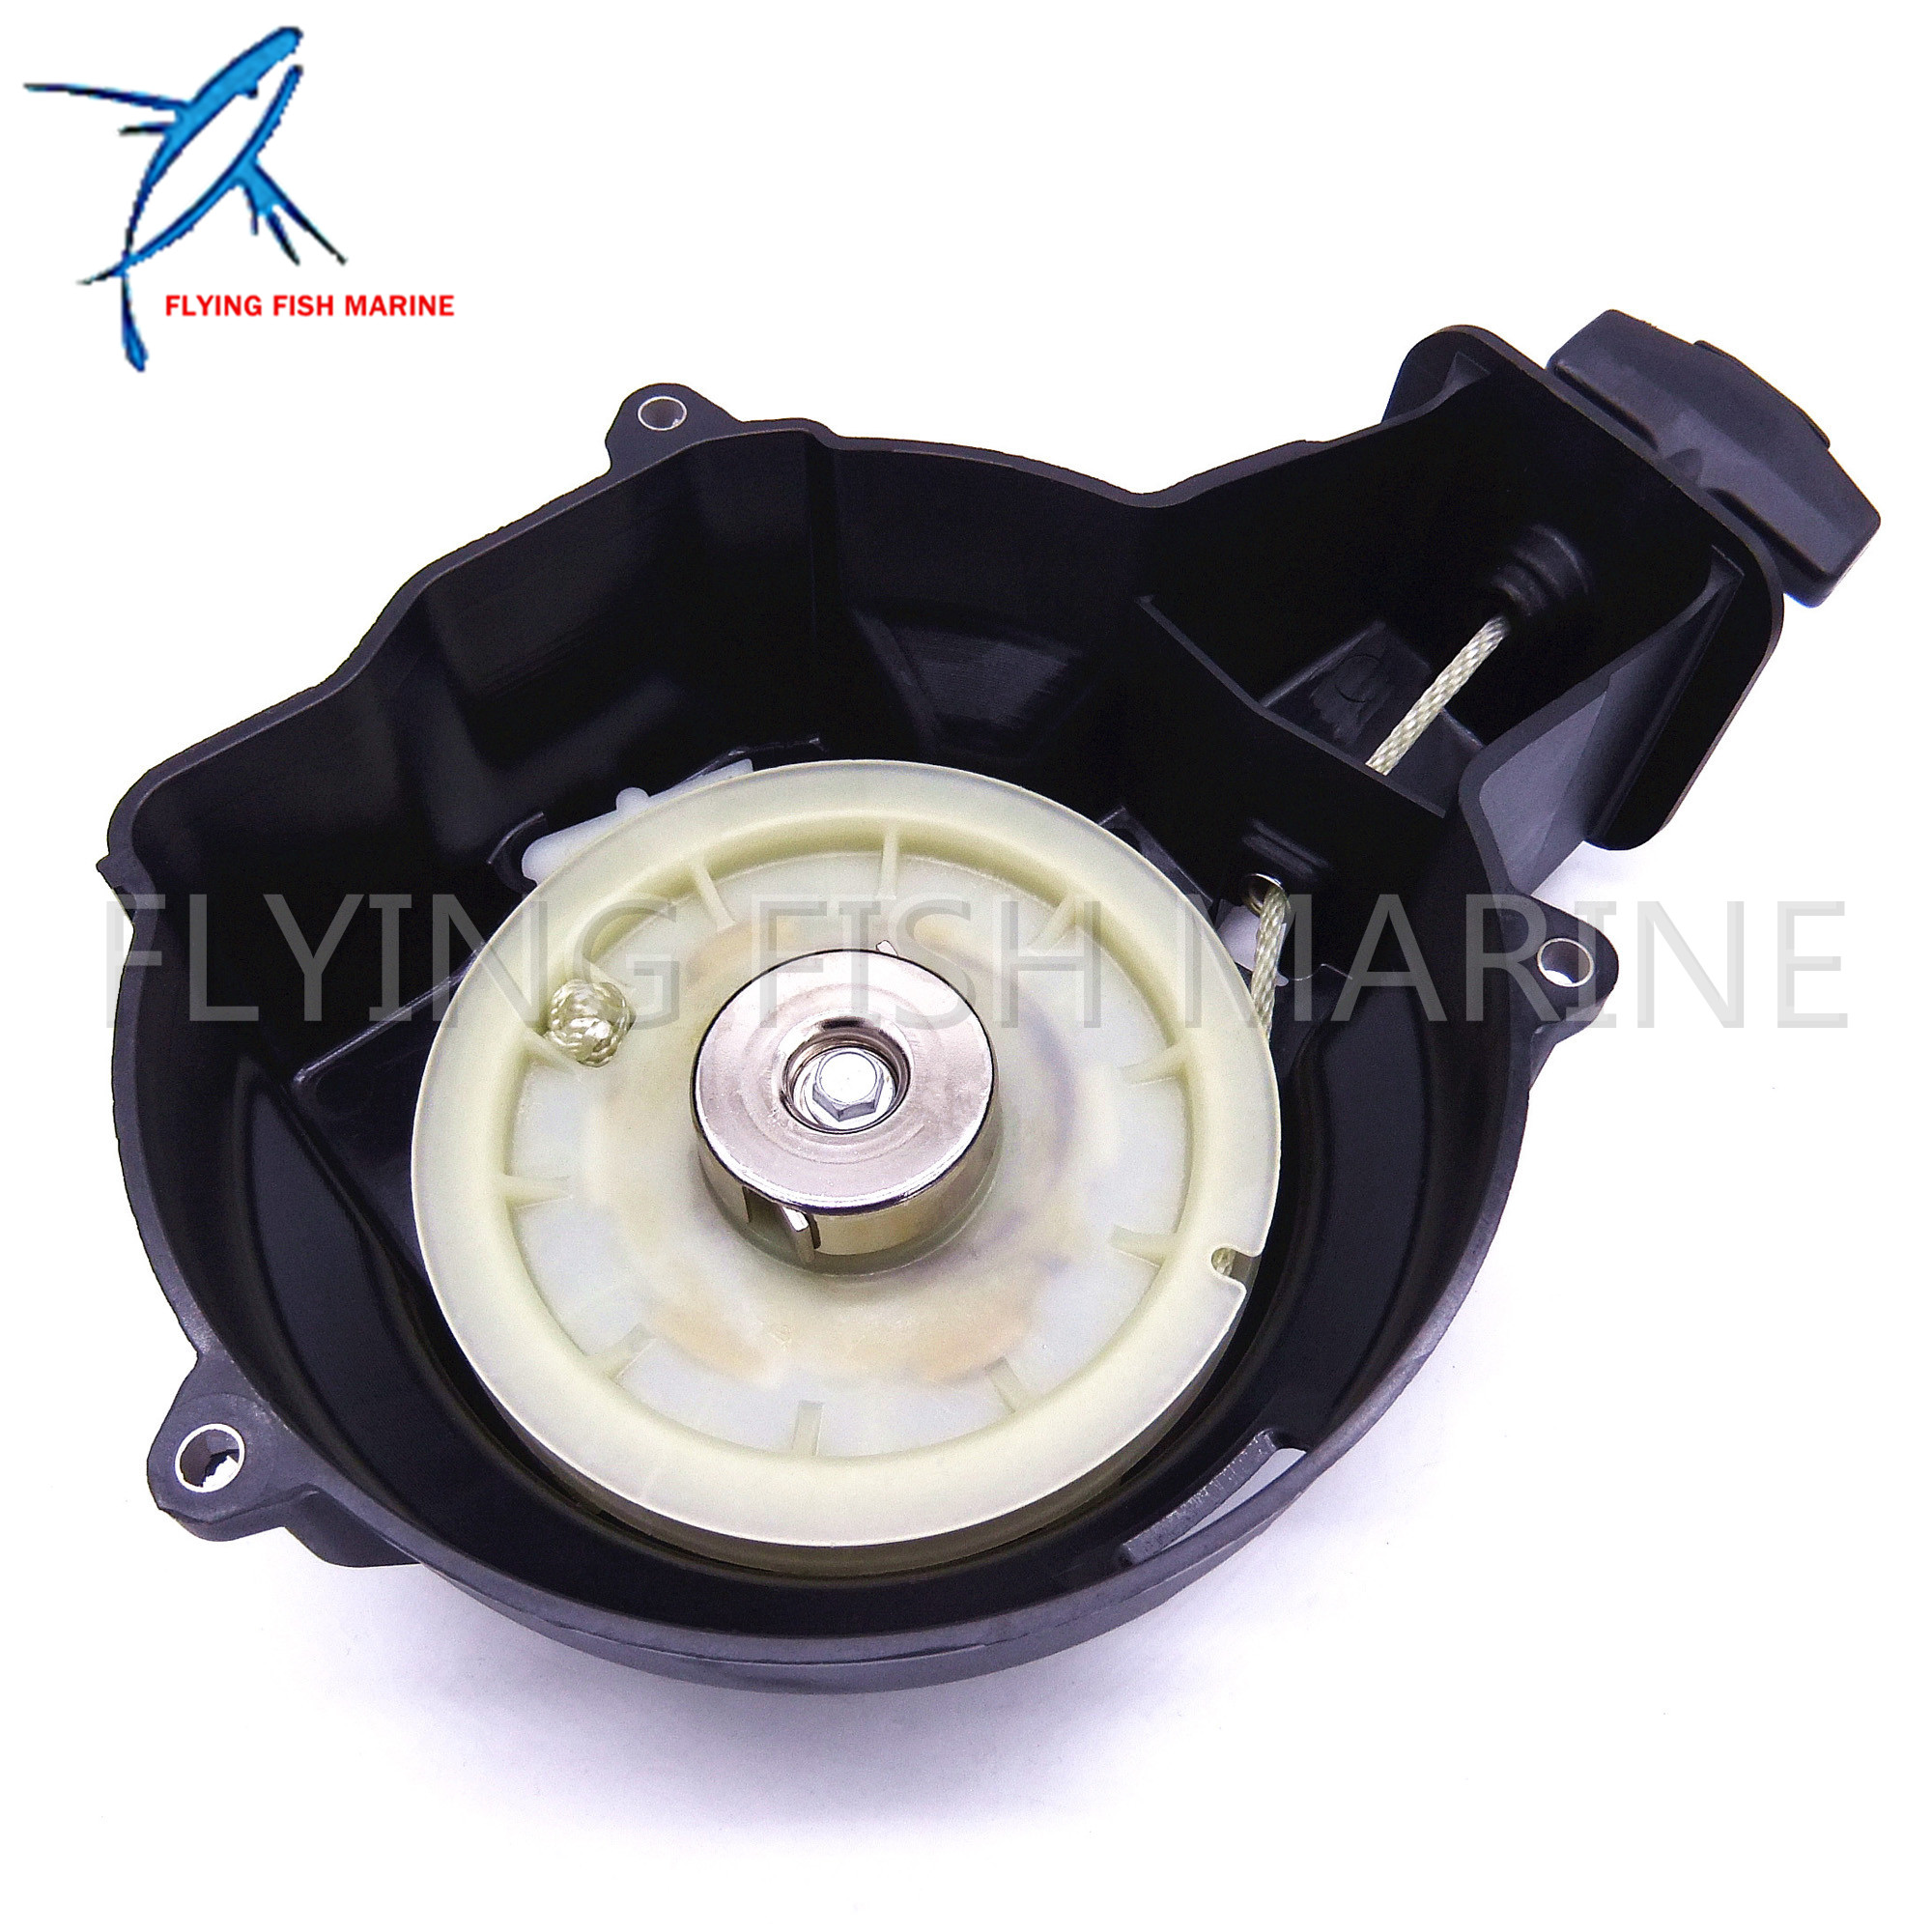 Outboard Motors Starter Assy T8-05050000 T6-05050000 for Parsun HDX T9.8 T8 T6 BM 2-stroke ,Free Shipping free shipping pu leather case for cube t8 t8s t8 plus t8 ultimate 8tablet pc high quality case for cube t8 free 2 gifts